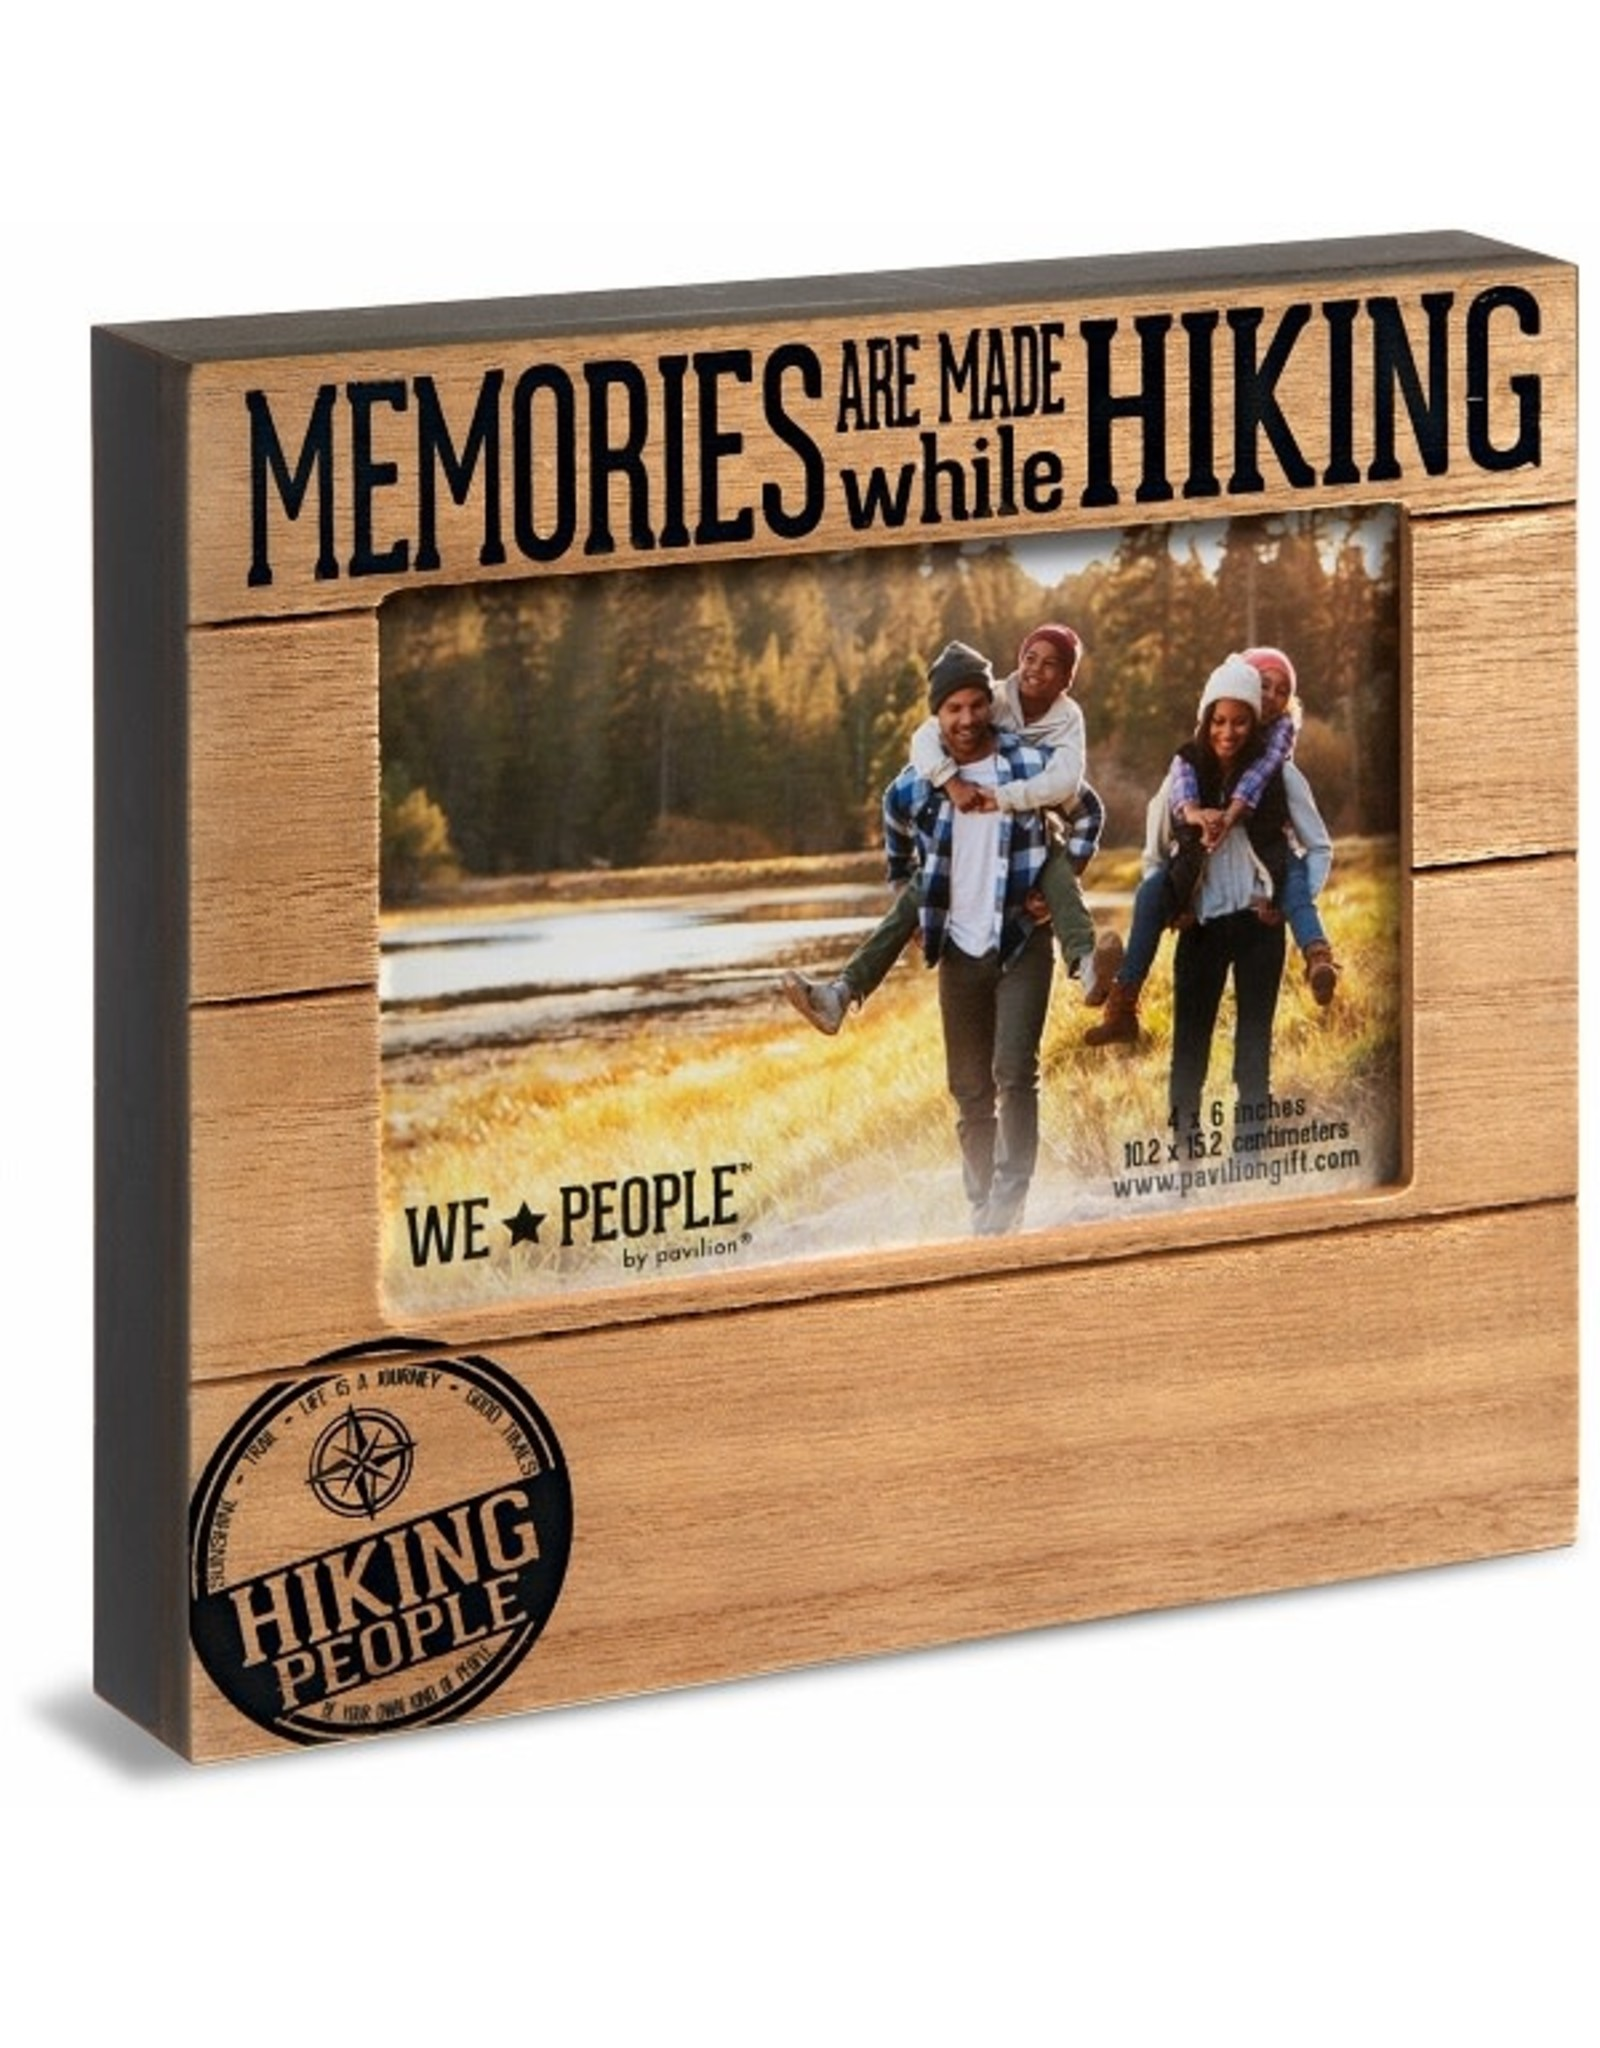 Pavilion Gift HIKING PEOPLE FRAME